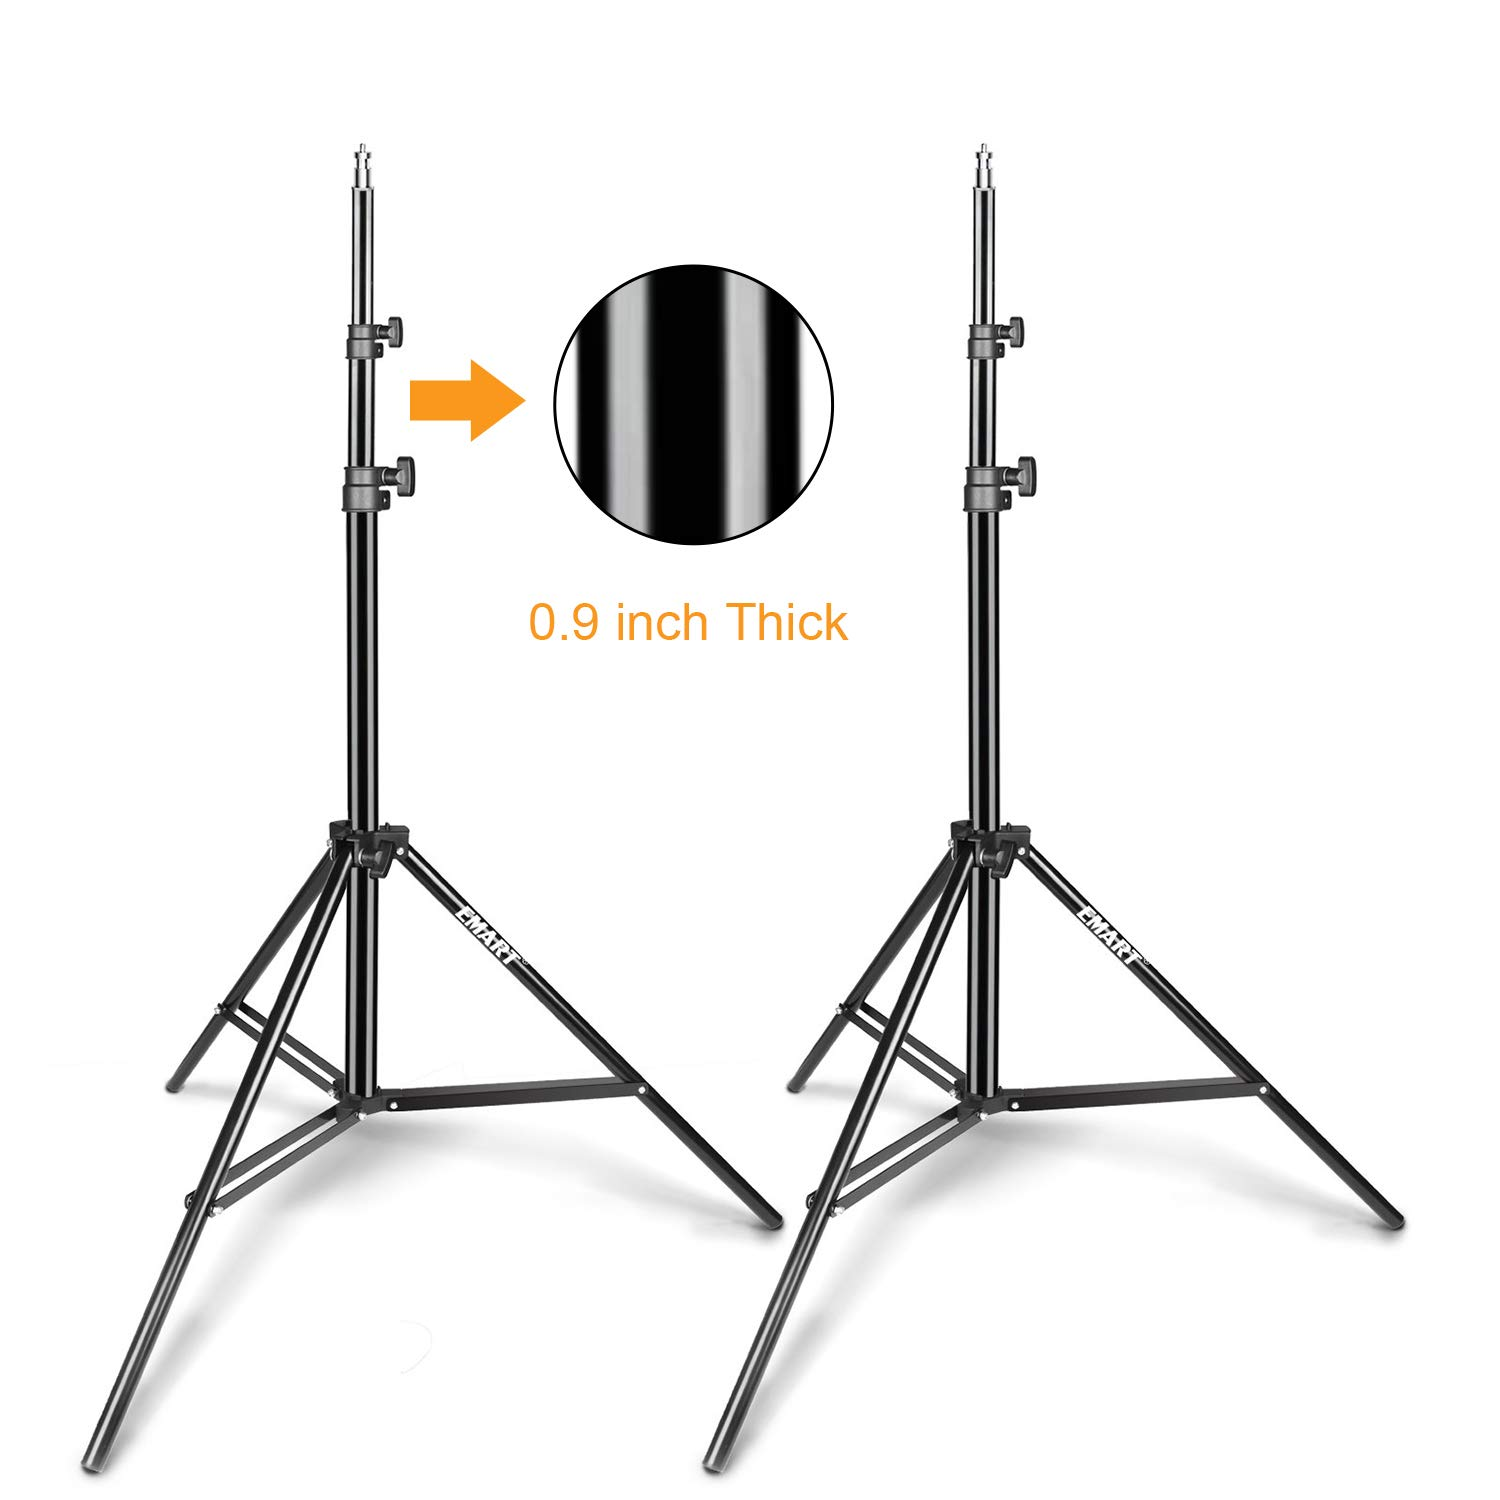 Emart Light Stand, 6.2ft Photography Stands for Photo Video Studio, Background, HTC Vive, Softbox, Reflector, etc. (2 Pack) by EMART